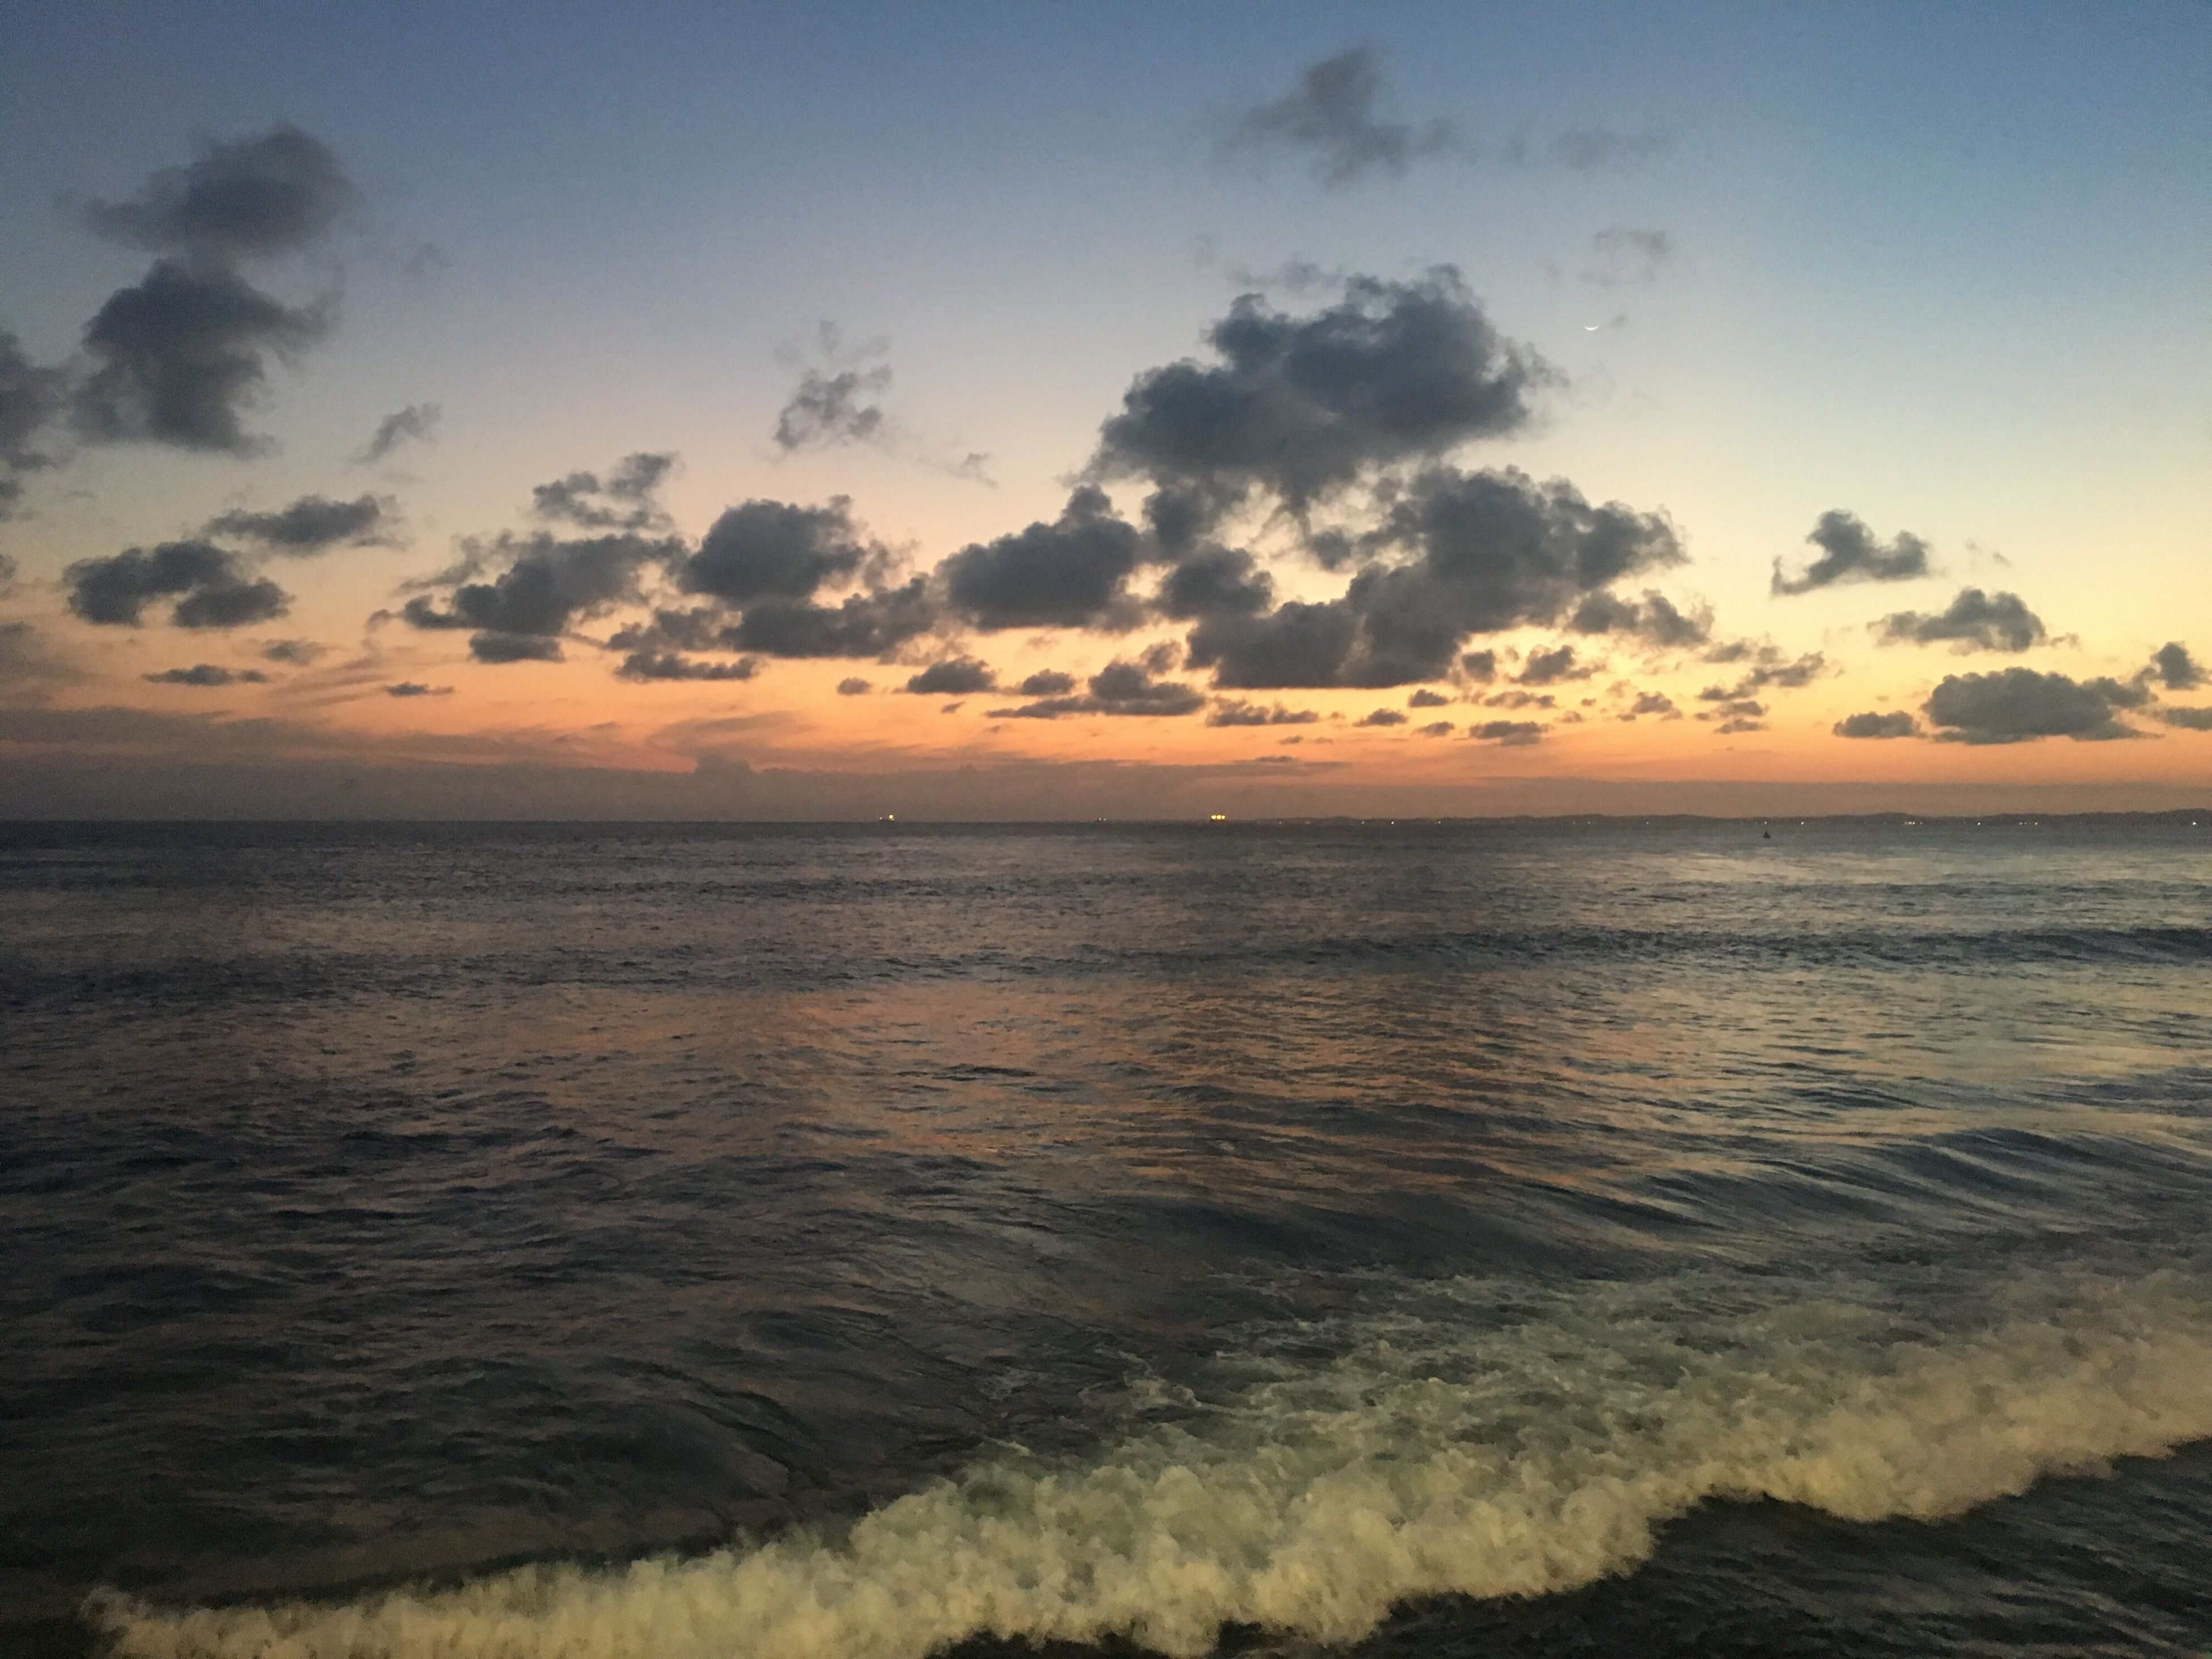 sea, sunset, beach, sand, scenics, sun, outdoors, sky, nature, no people, horizon over water, water, vacations, beauty in nature, postcard